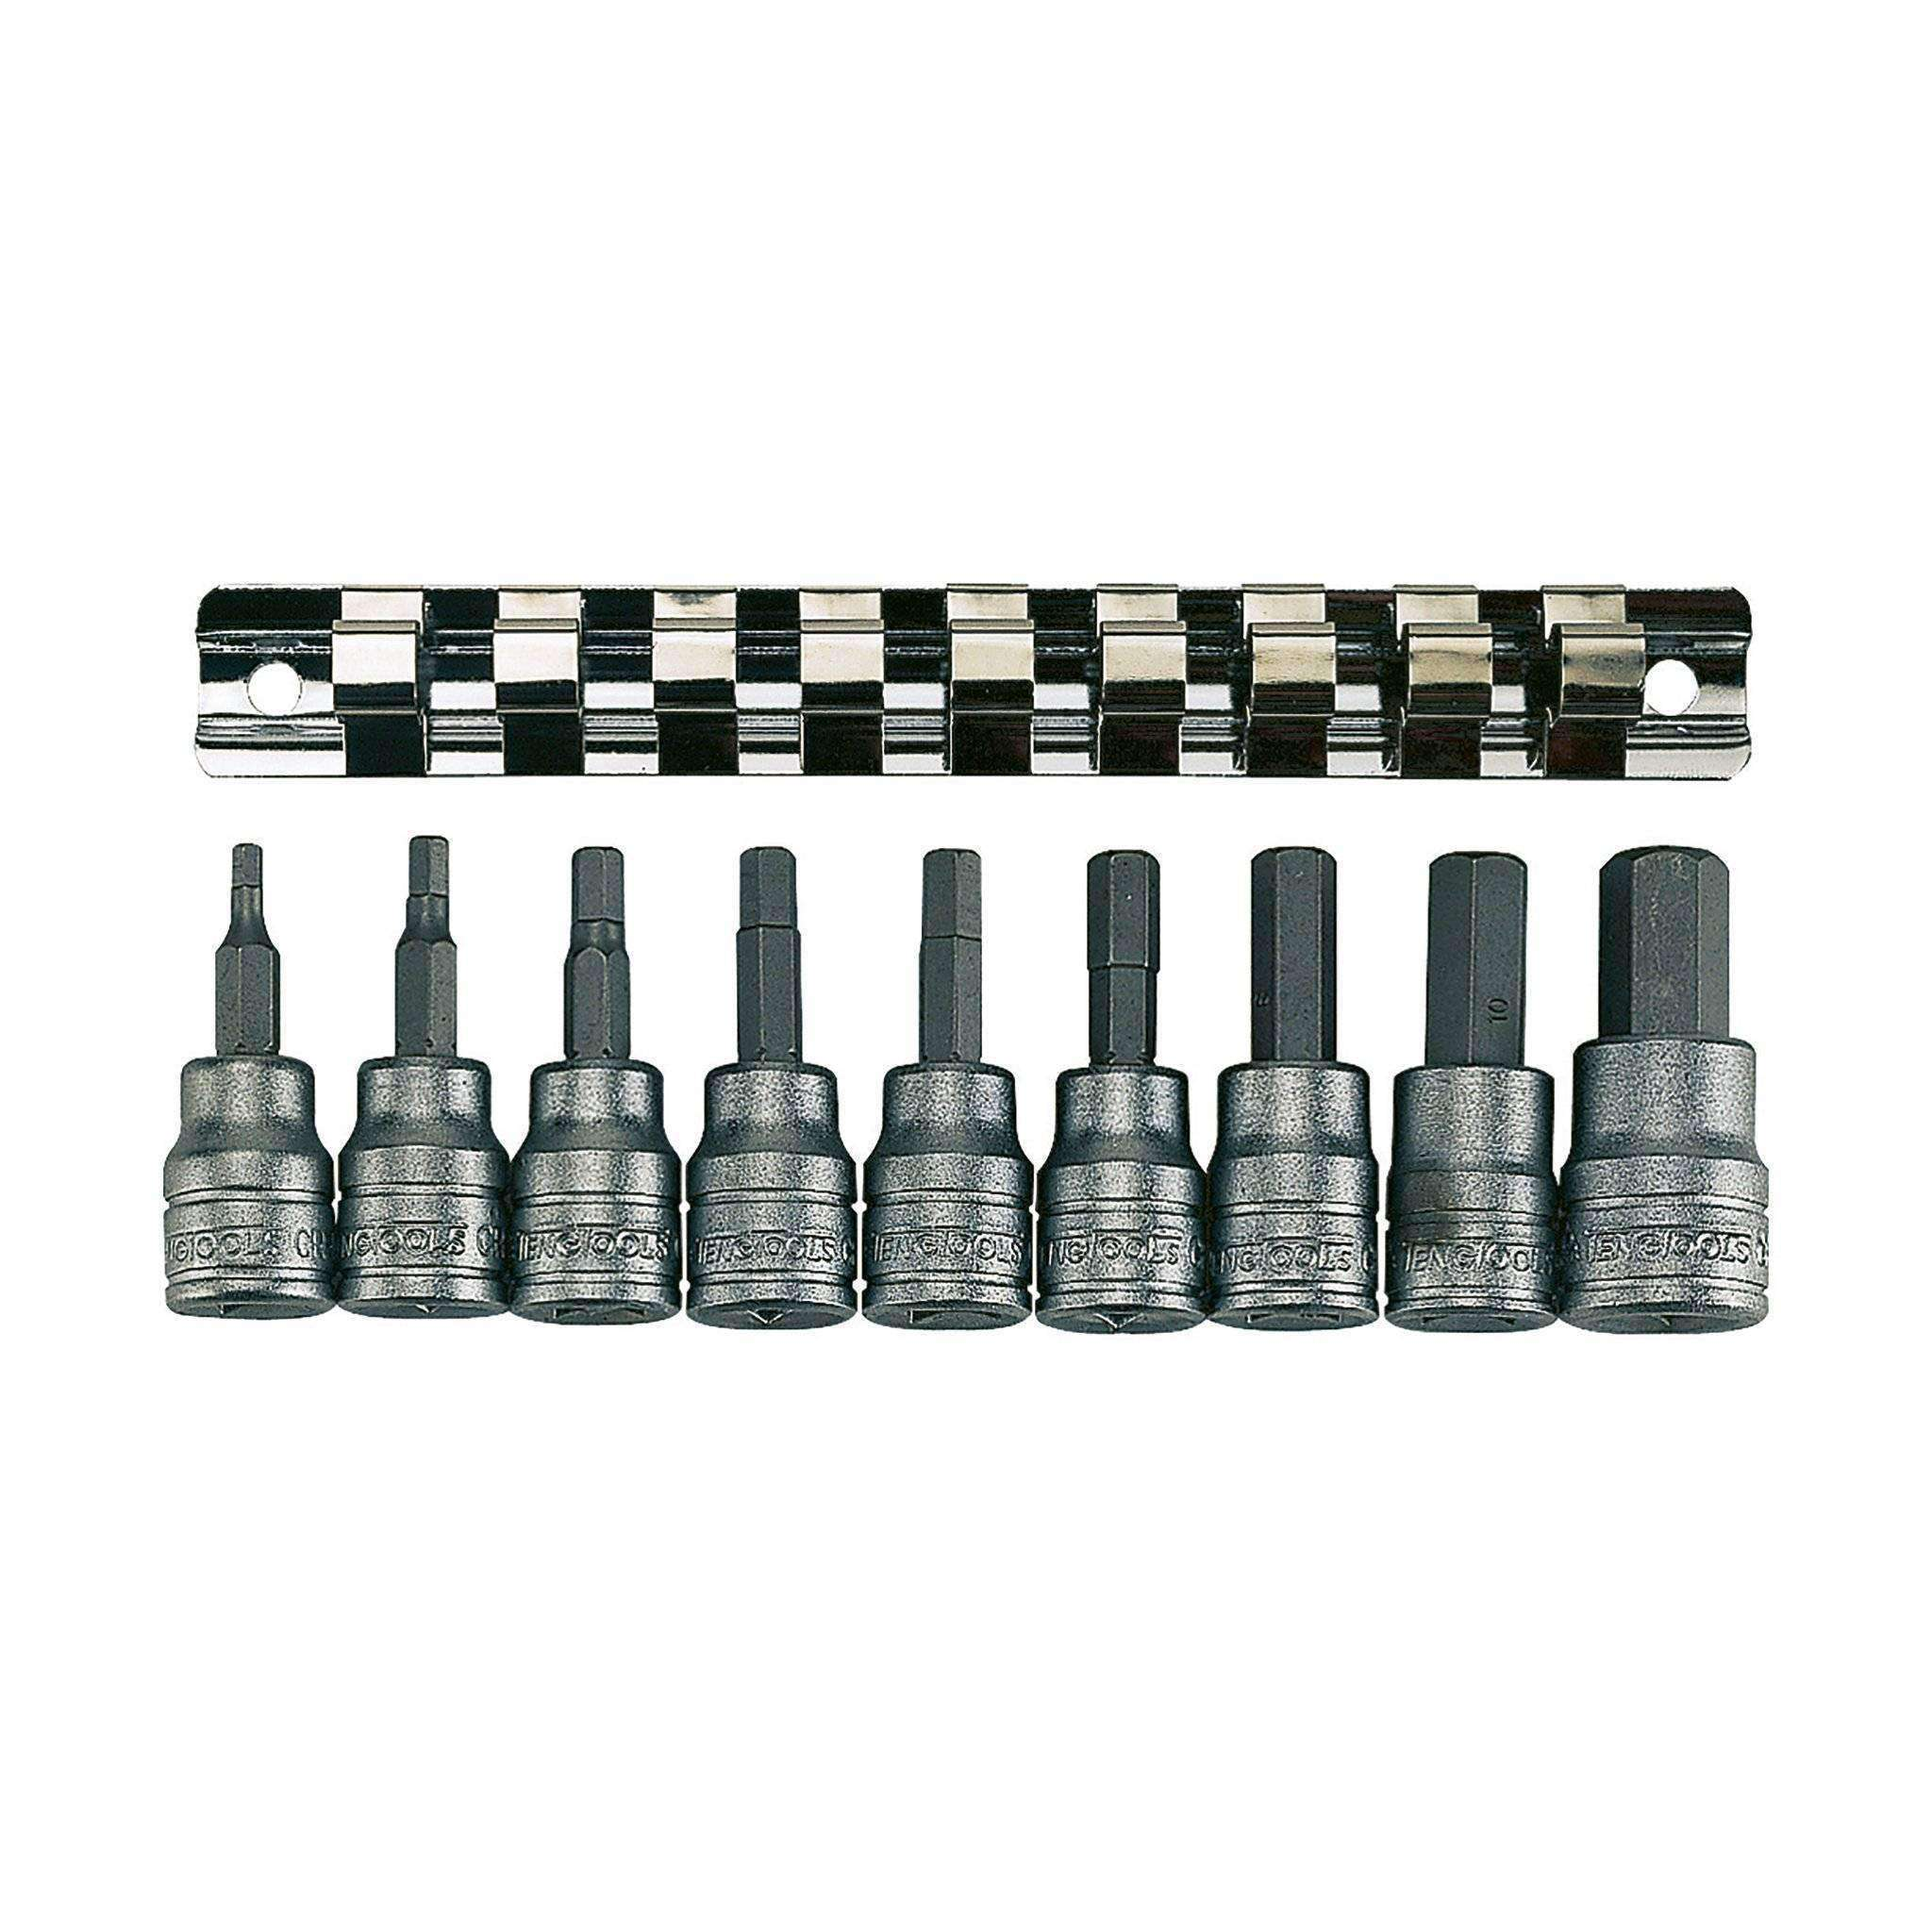 Teng Tools M3812 - 9 Piece 3/8 inch Drive Metric Hex Bit Socket Set - Teng Tools USA